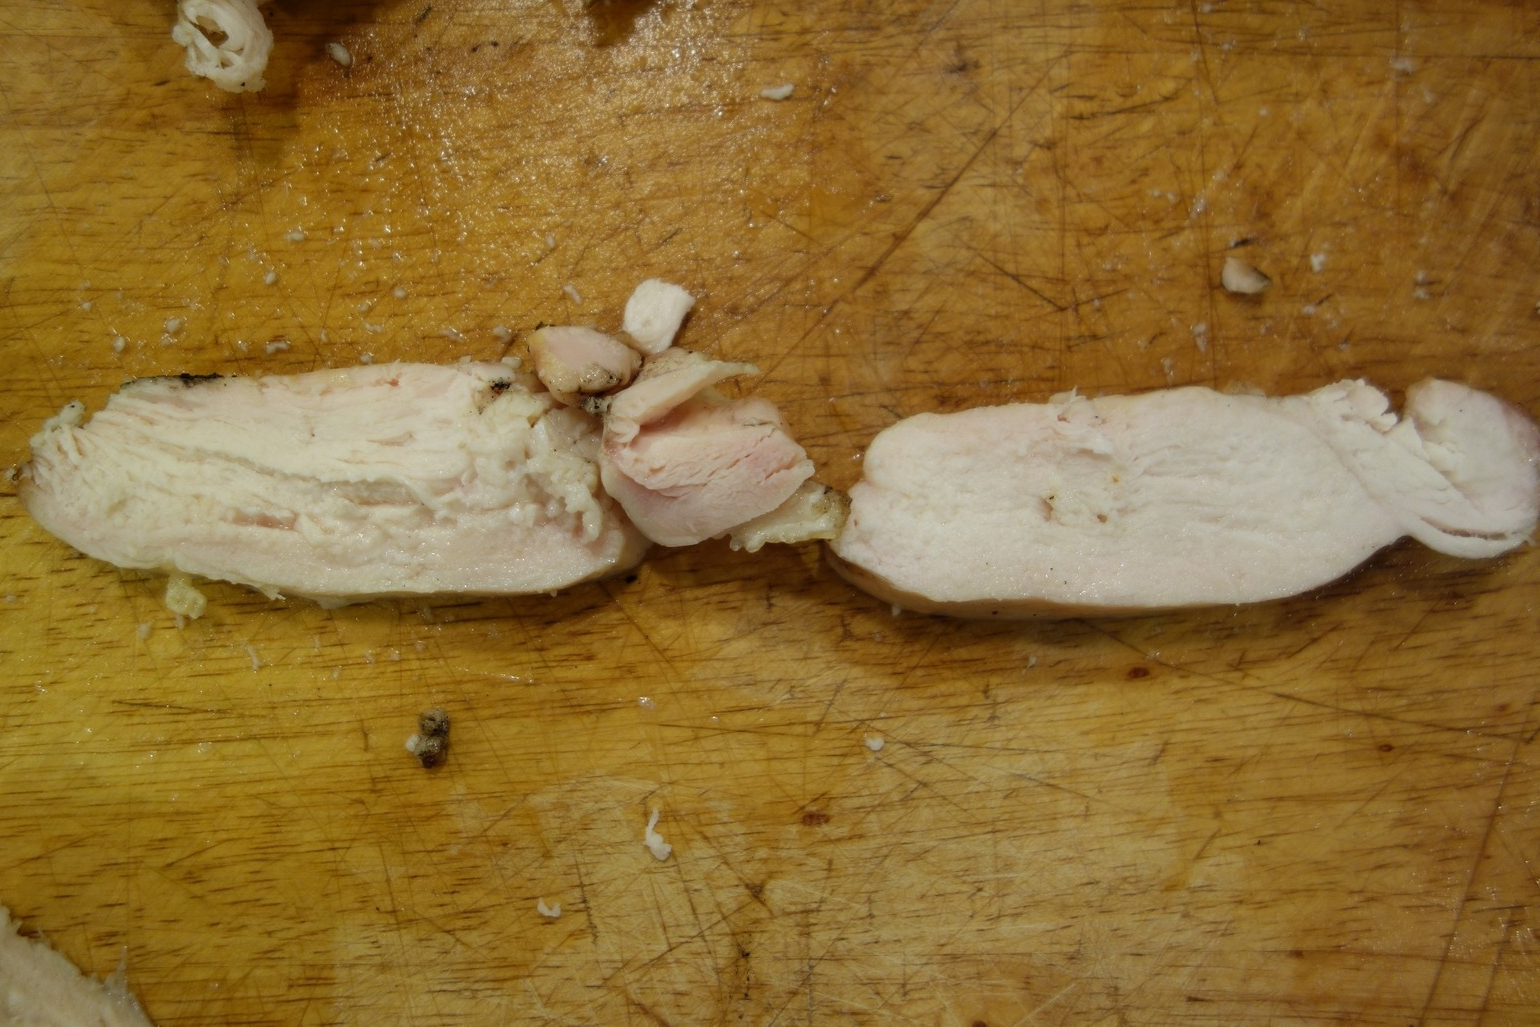 In this cross-section of the normal breasts, the wet-brined cut on the left is slightly taller than the dry-brined cut on the right. It is also juicier.  I did not notice any real degradation in flavor vs. the dry-brined breast on the right.